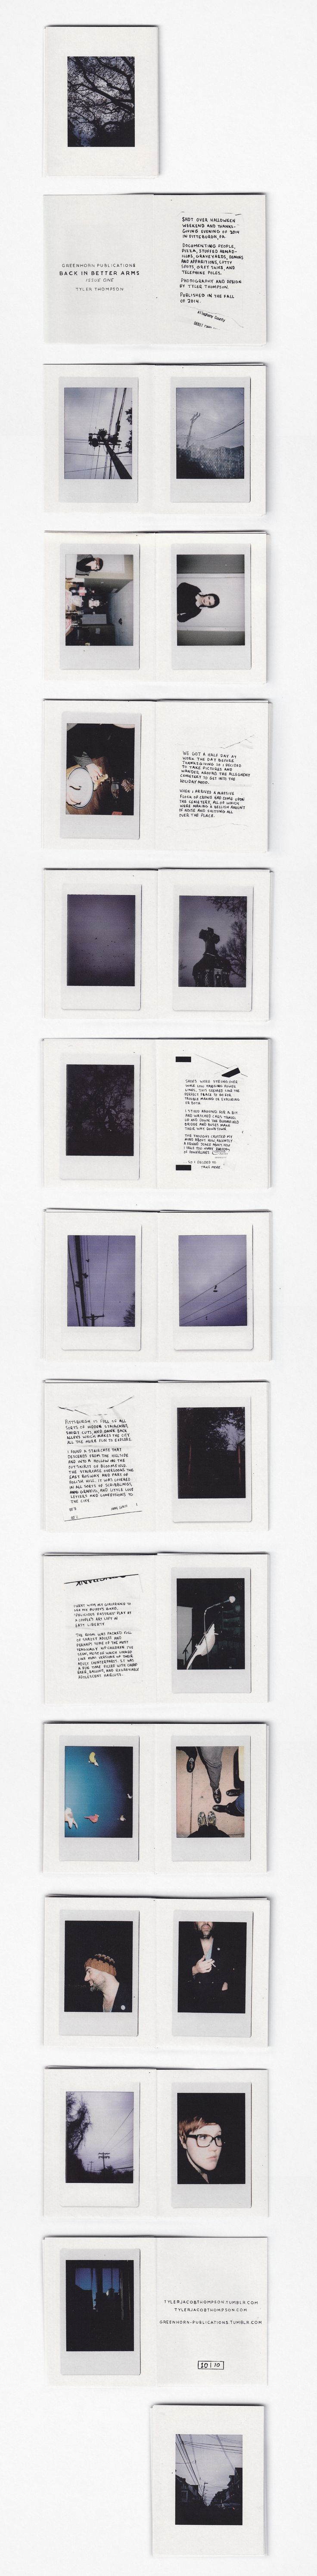 'Back In Better Arms' is a Polaroid zine by Tyler Thompson. This issue collects images shot during Halloween and Thanksgiving evening of 2014 from various places in Pittsburgh, PA.  28 pages | 21 photos | Full Color  Single sheet newsprint cut and folded 28 times. Housed in a ziplock bag.  Limited to an edition of 10 copies